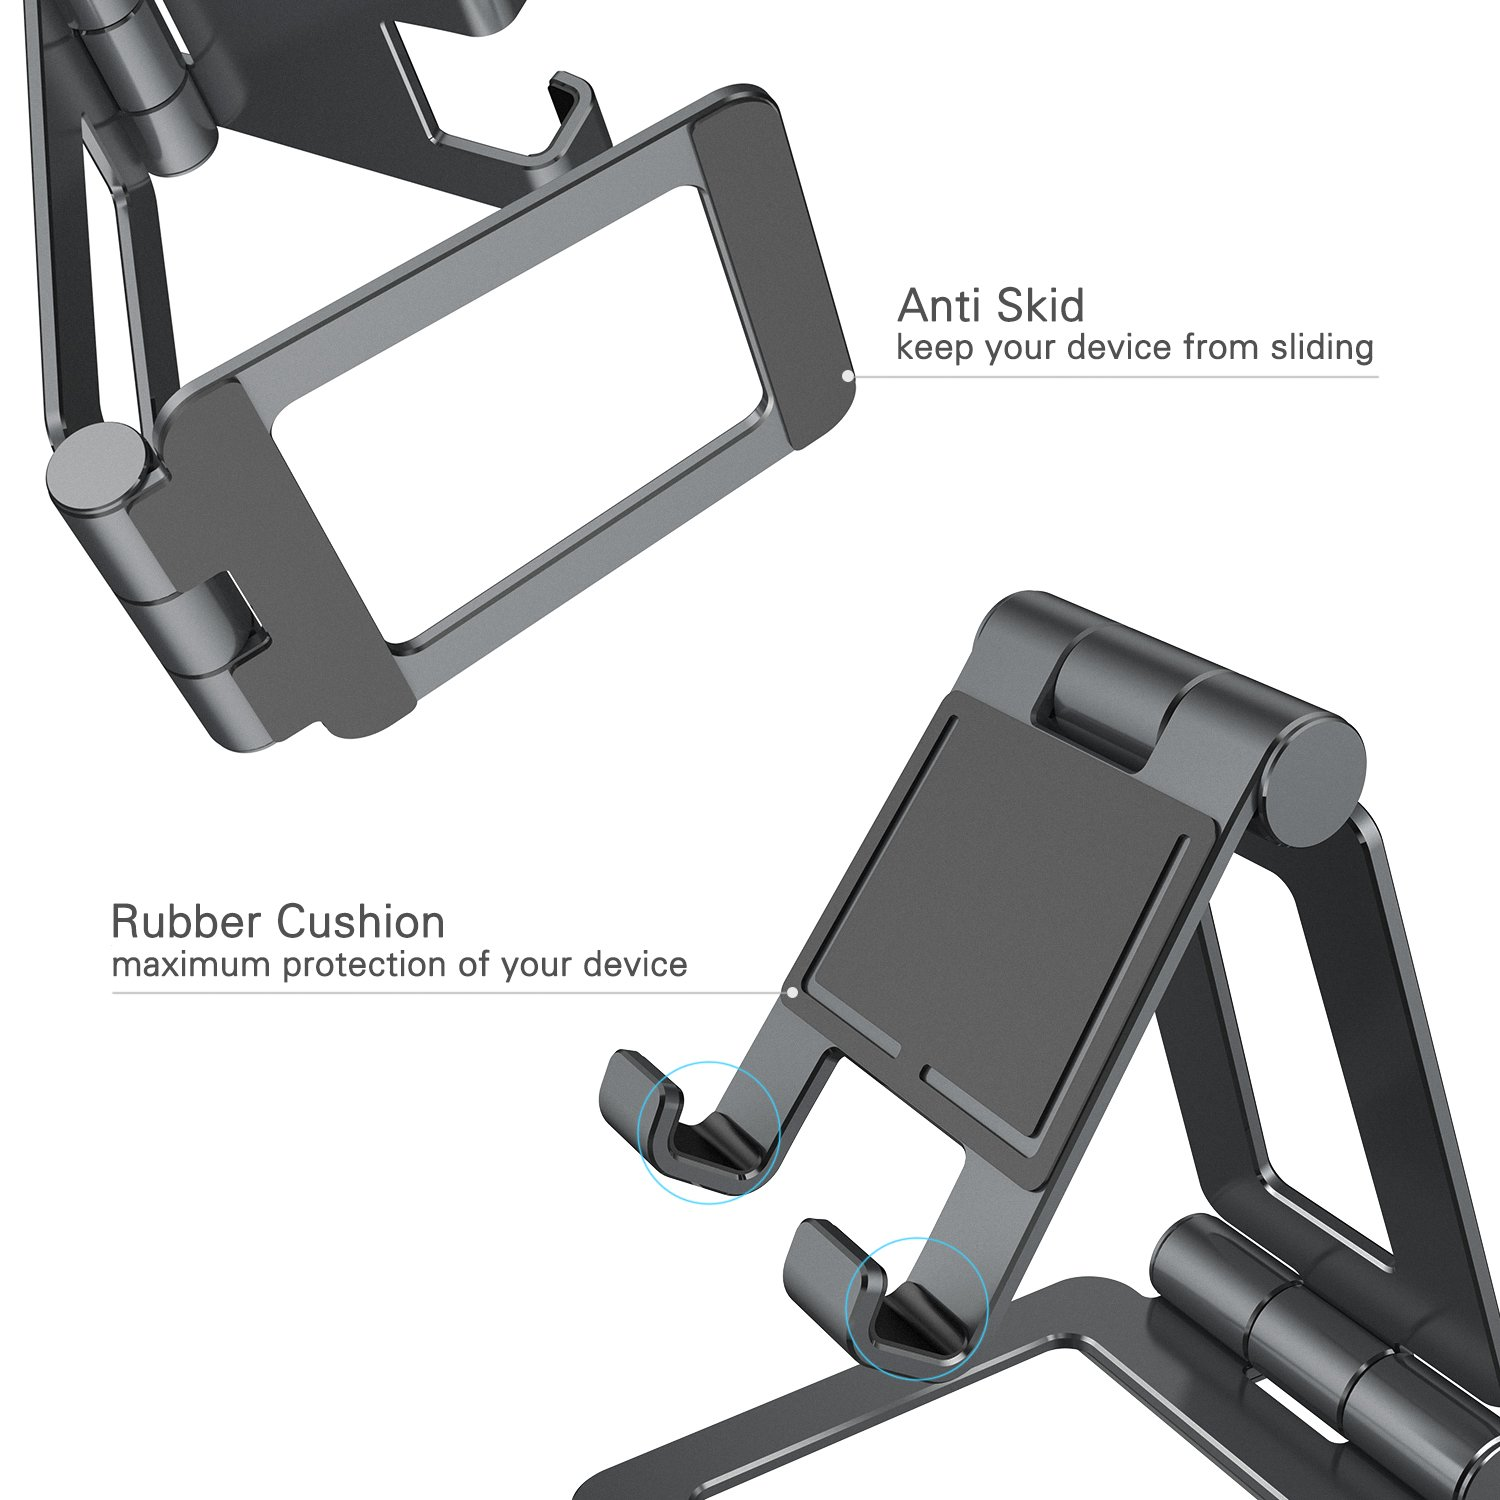 Adjustable iPad Stand, Tablet Stand Holders, Cell Phone Stands, iPhone Stand, Nintendo Switch Stand, iPad Pro Stand, iPad Mini Stands and Holders for Desk (4-13 inch) by Hi-Tech Wireless (Image #5)